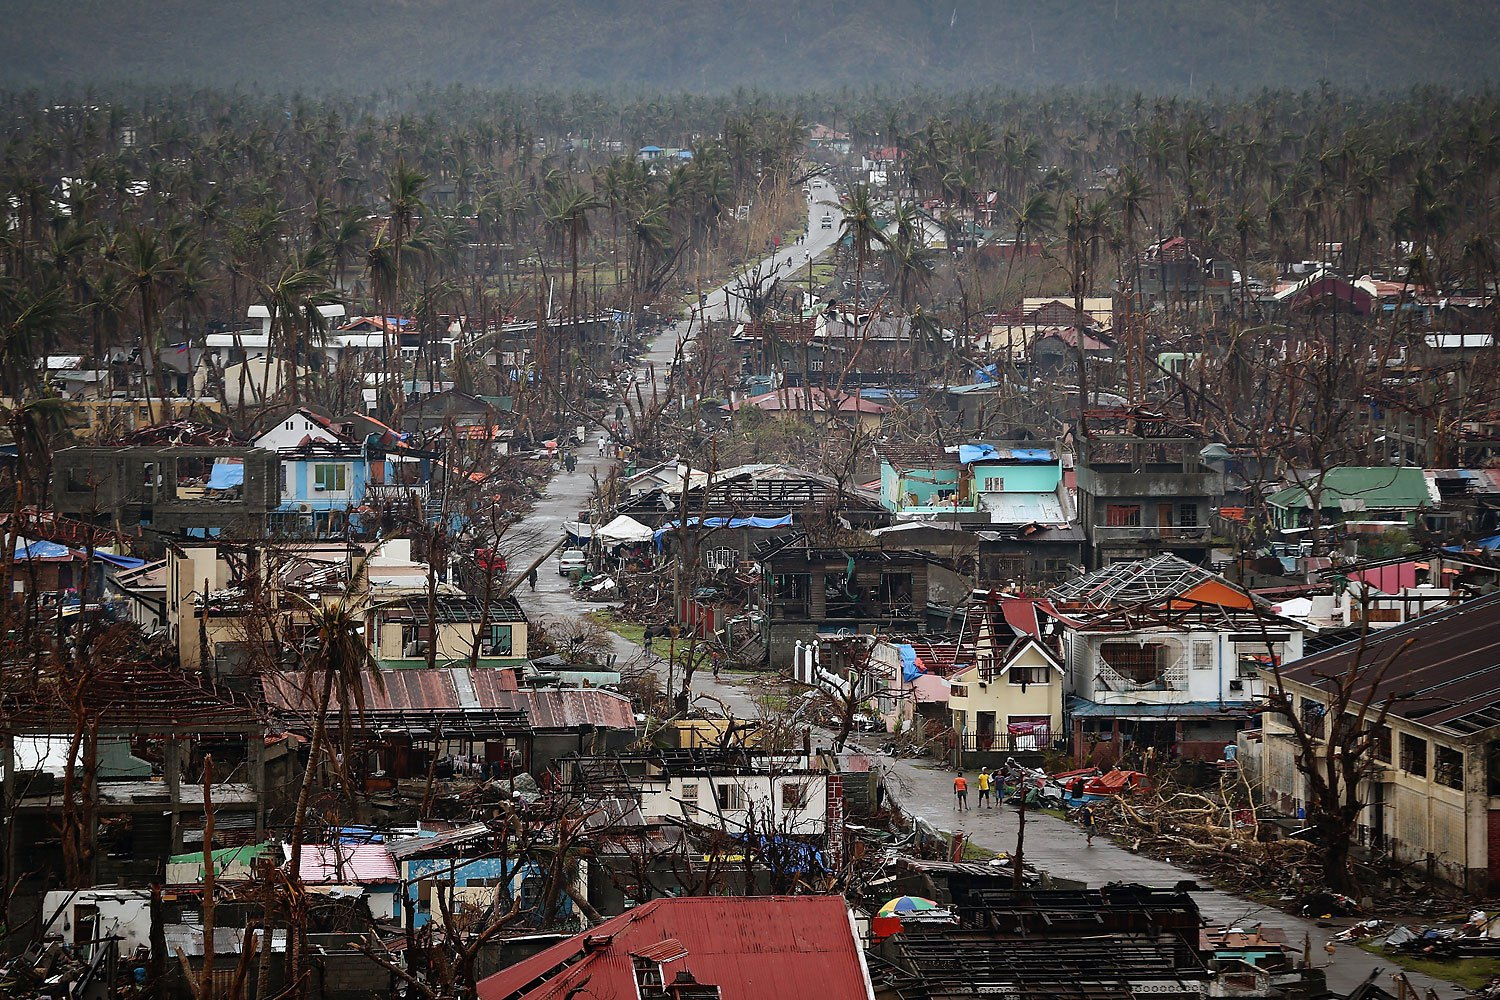 A general view of the destruction in Tolosa on November 21, 2013 in Leyte, Philippines.